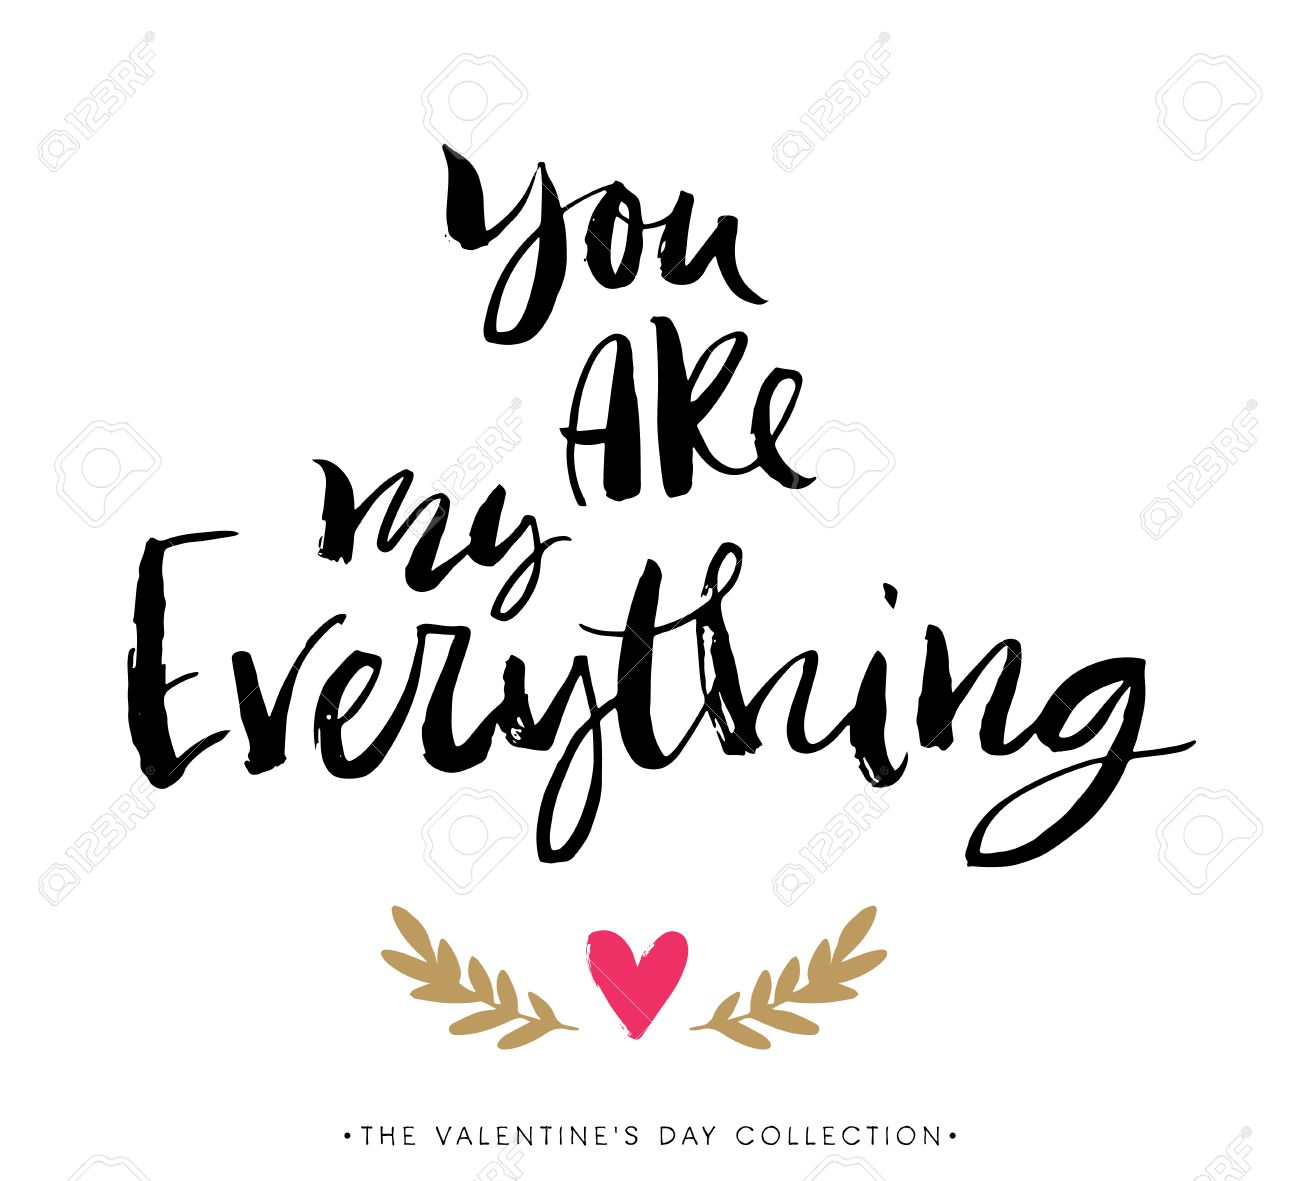 You Are My Everything Valentines Day Greeting Card With Calligraphy